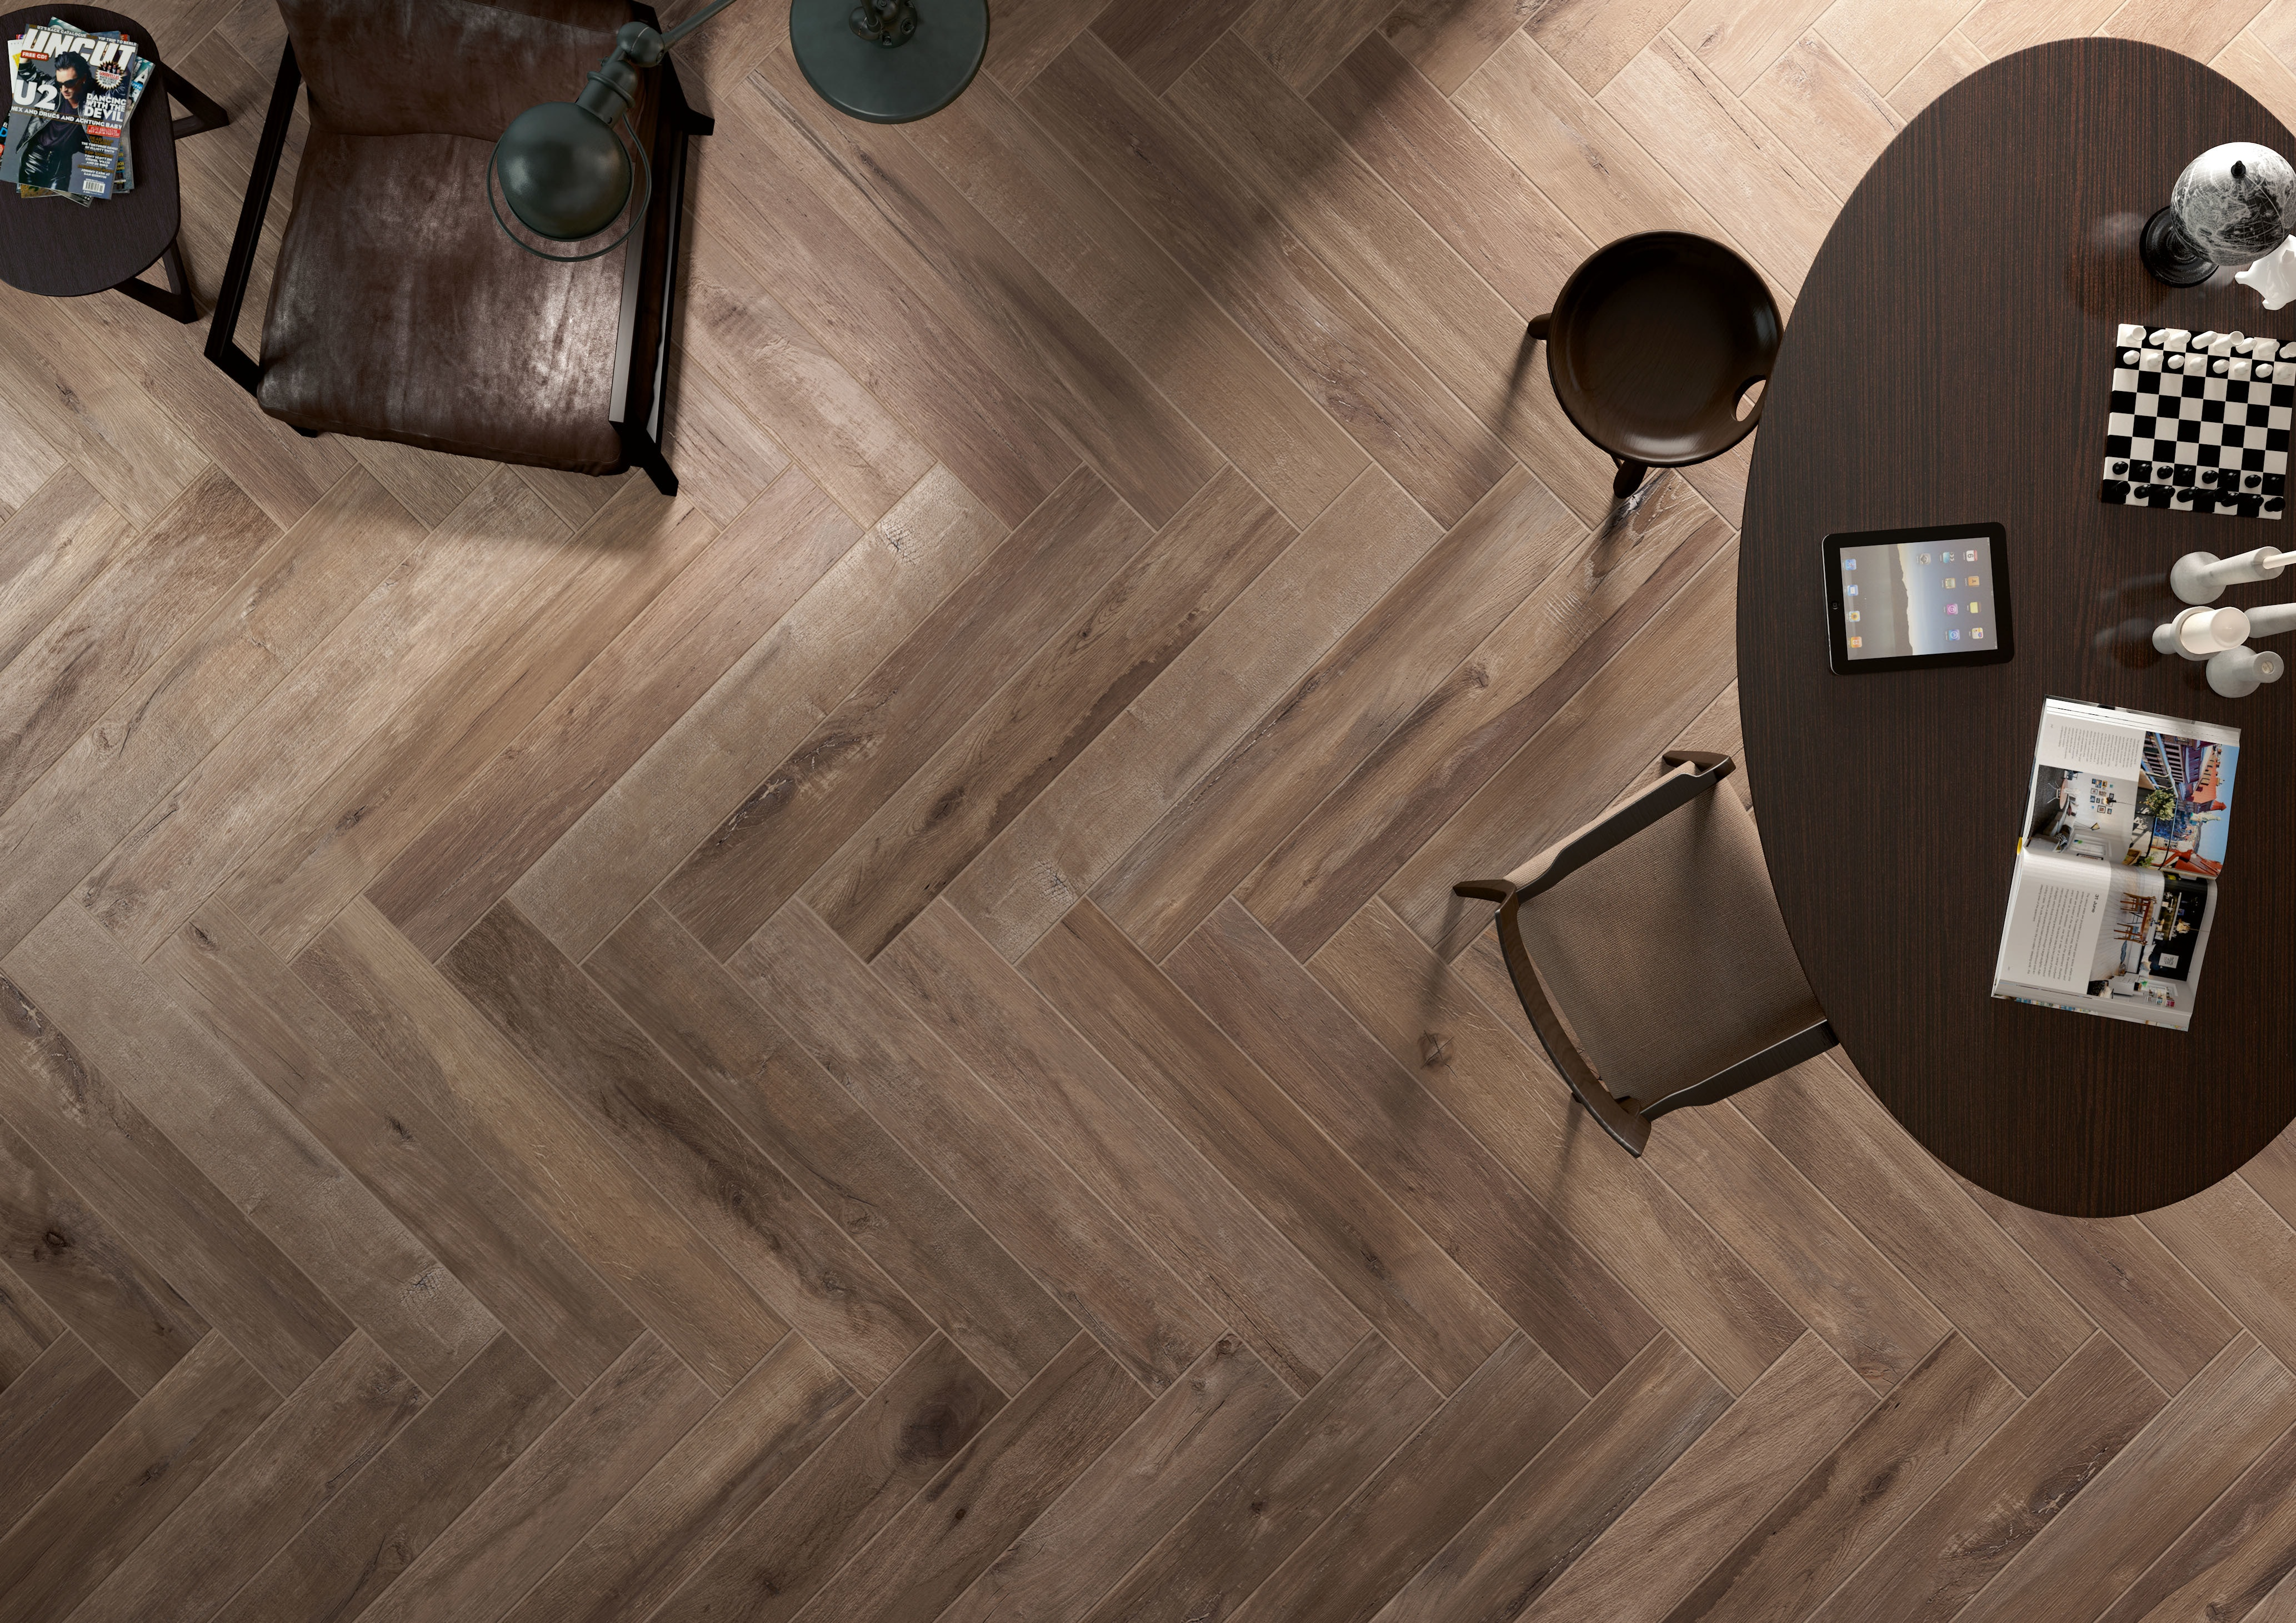 Wood look porcelain tile vs wood floors spot the difference sessemo trento series rectified self leveling wood look porcelain sku 15032461 dailygadgetfo Image collections